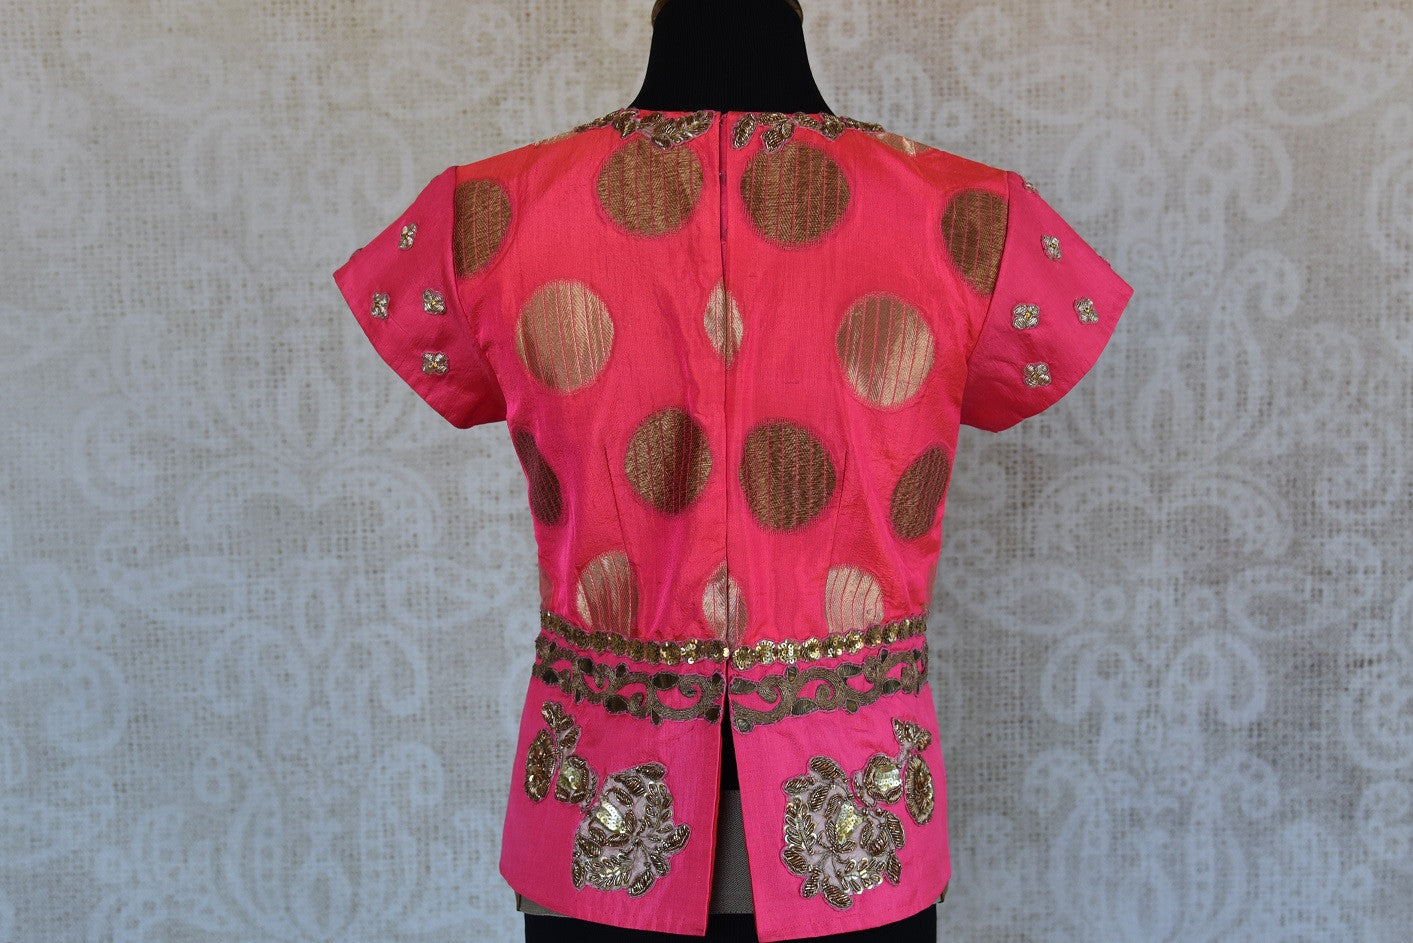 Shop this traditional Indian pink embroidered banarasi blouse from Pure Elegance online or from our store in Edison near NJ. Ideal for any wedding or sangeet. Top View.